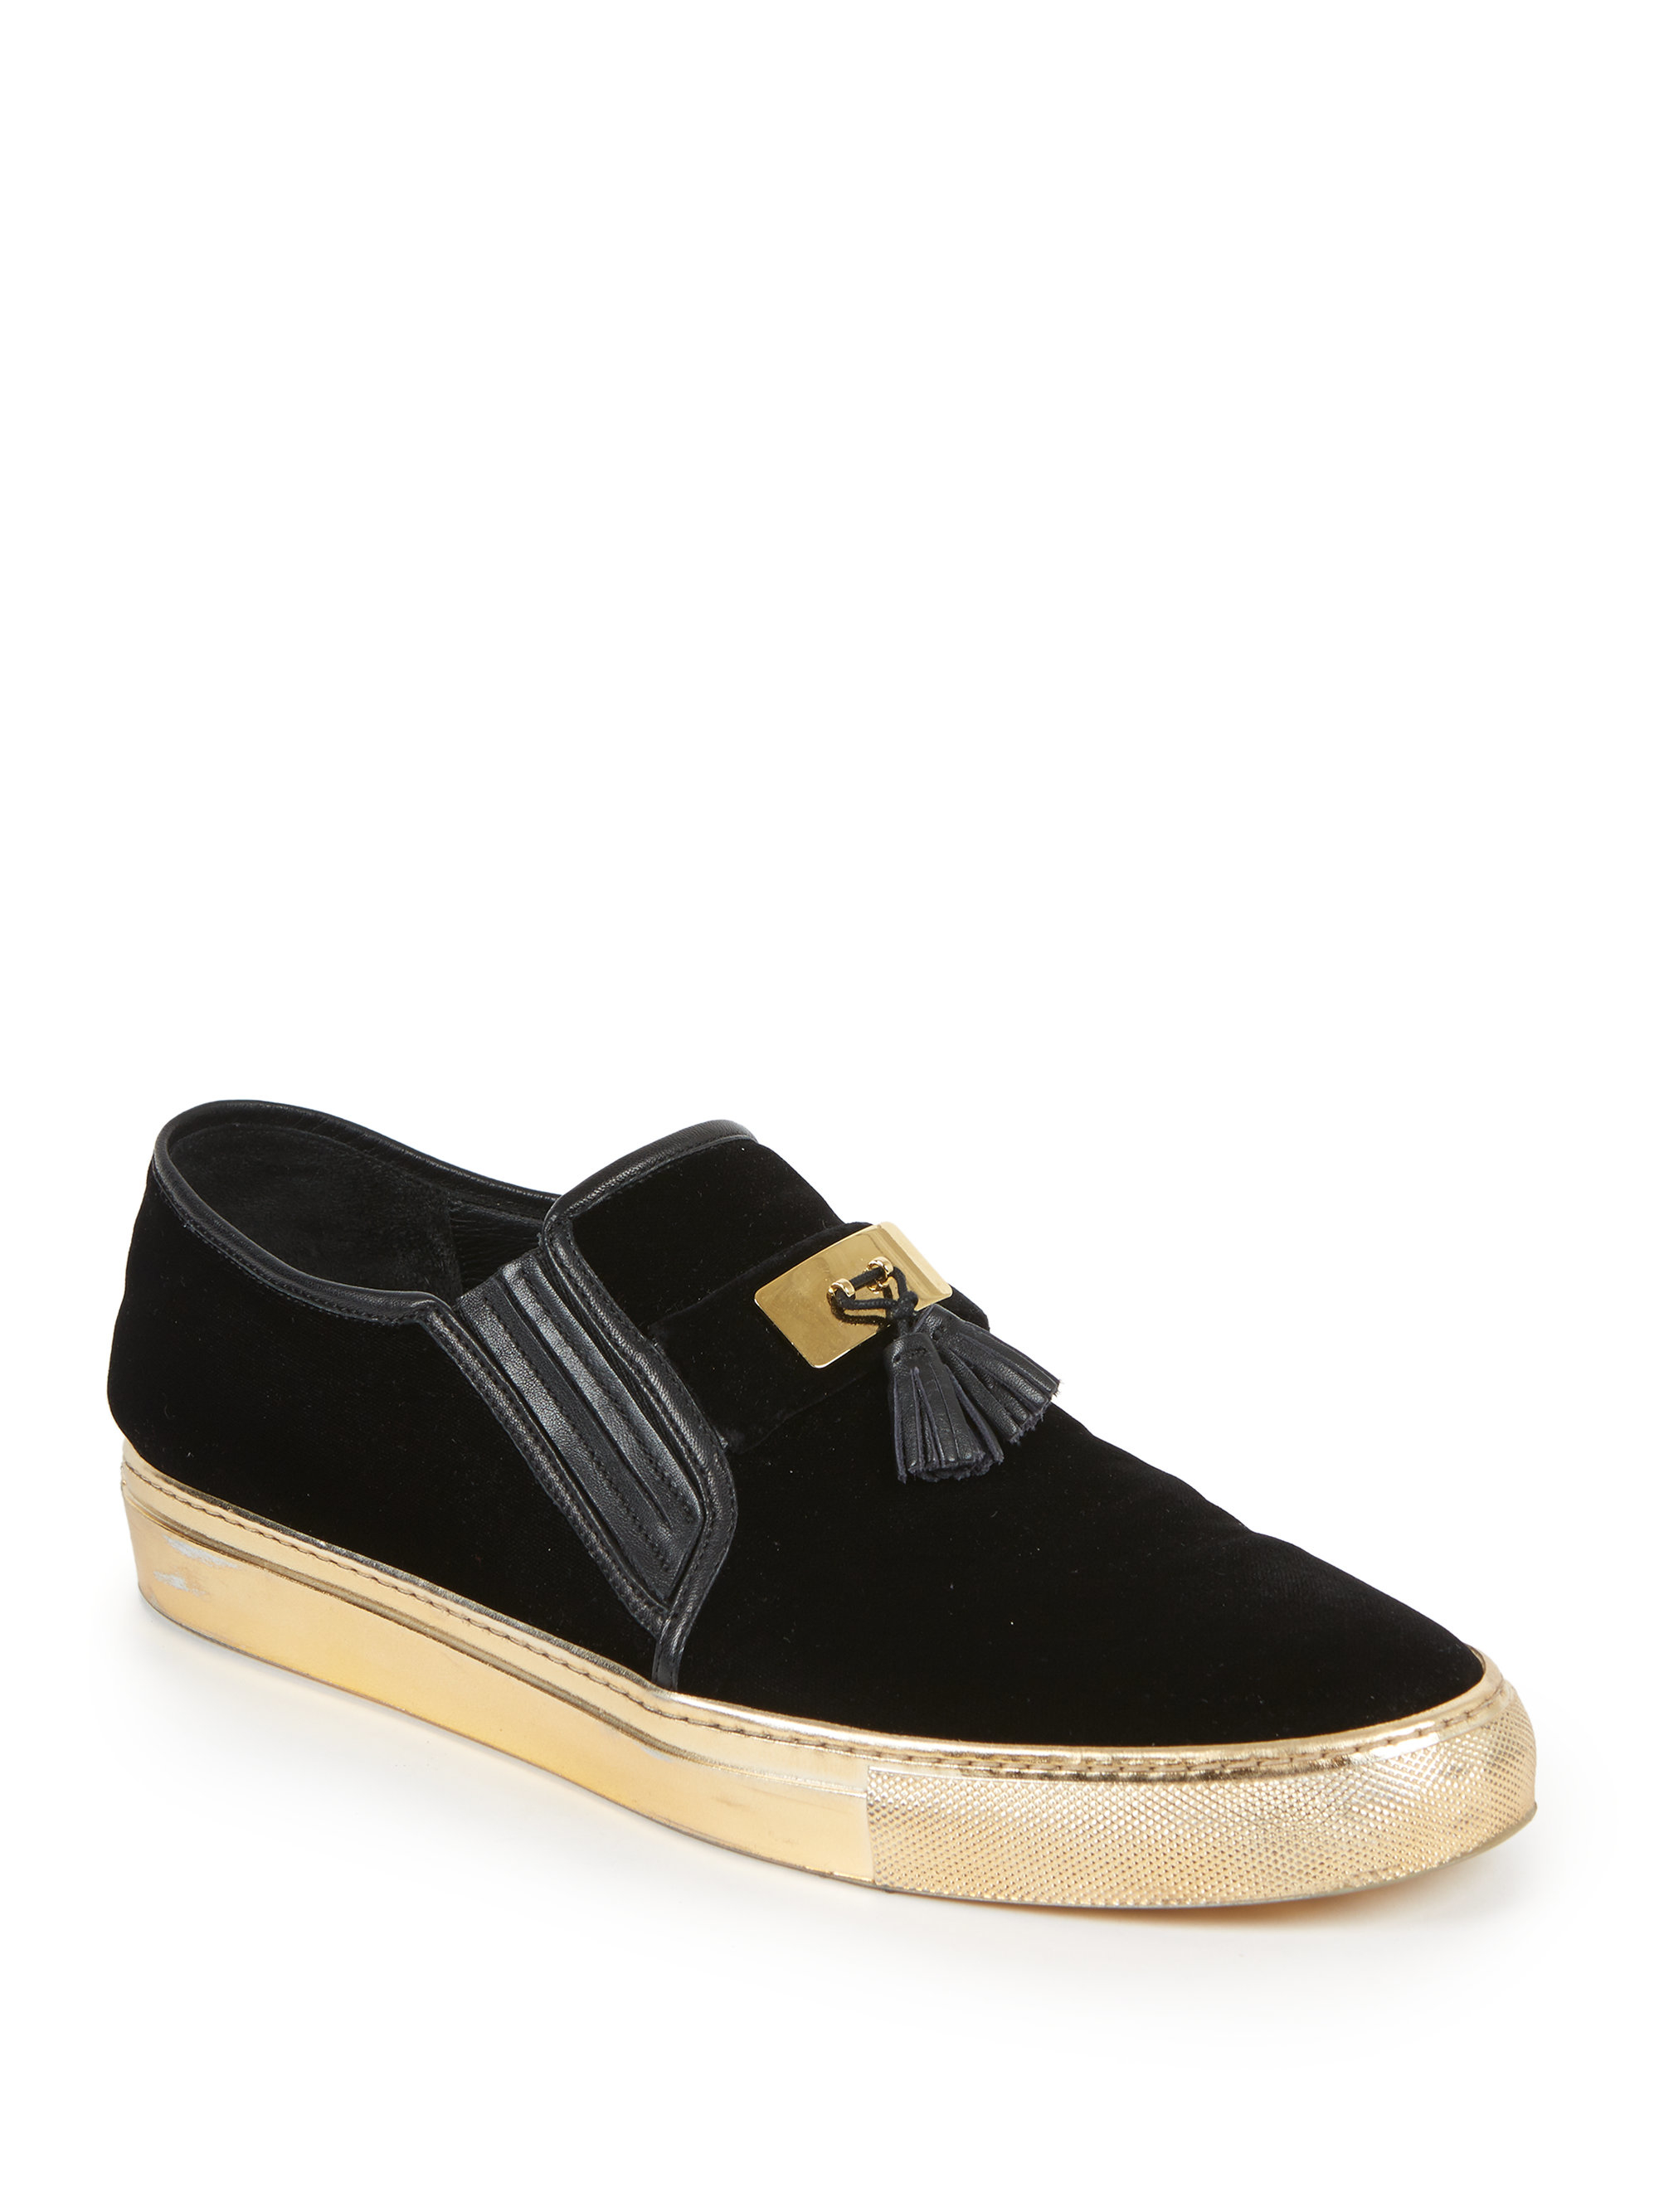 Lyst Balmain Tasseled Velvet Slip On Sneakers In Black